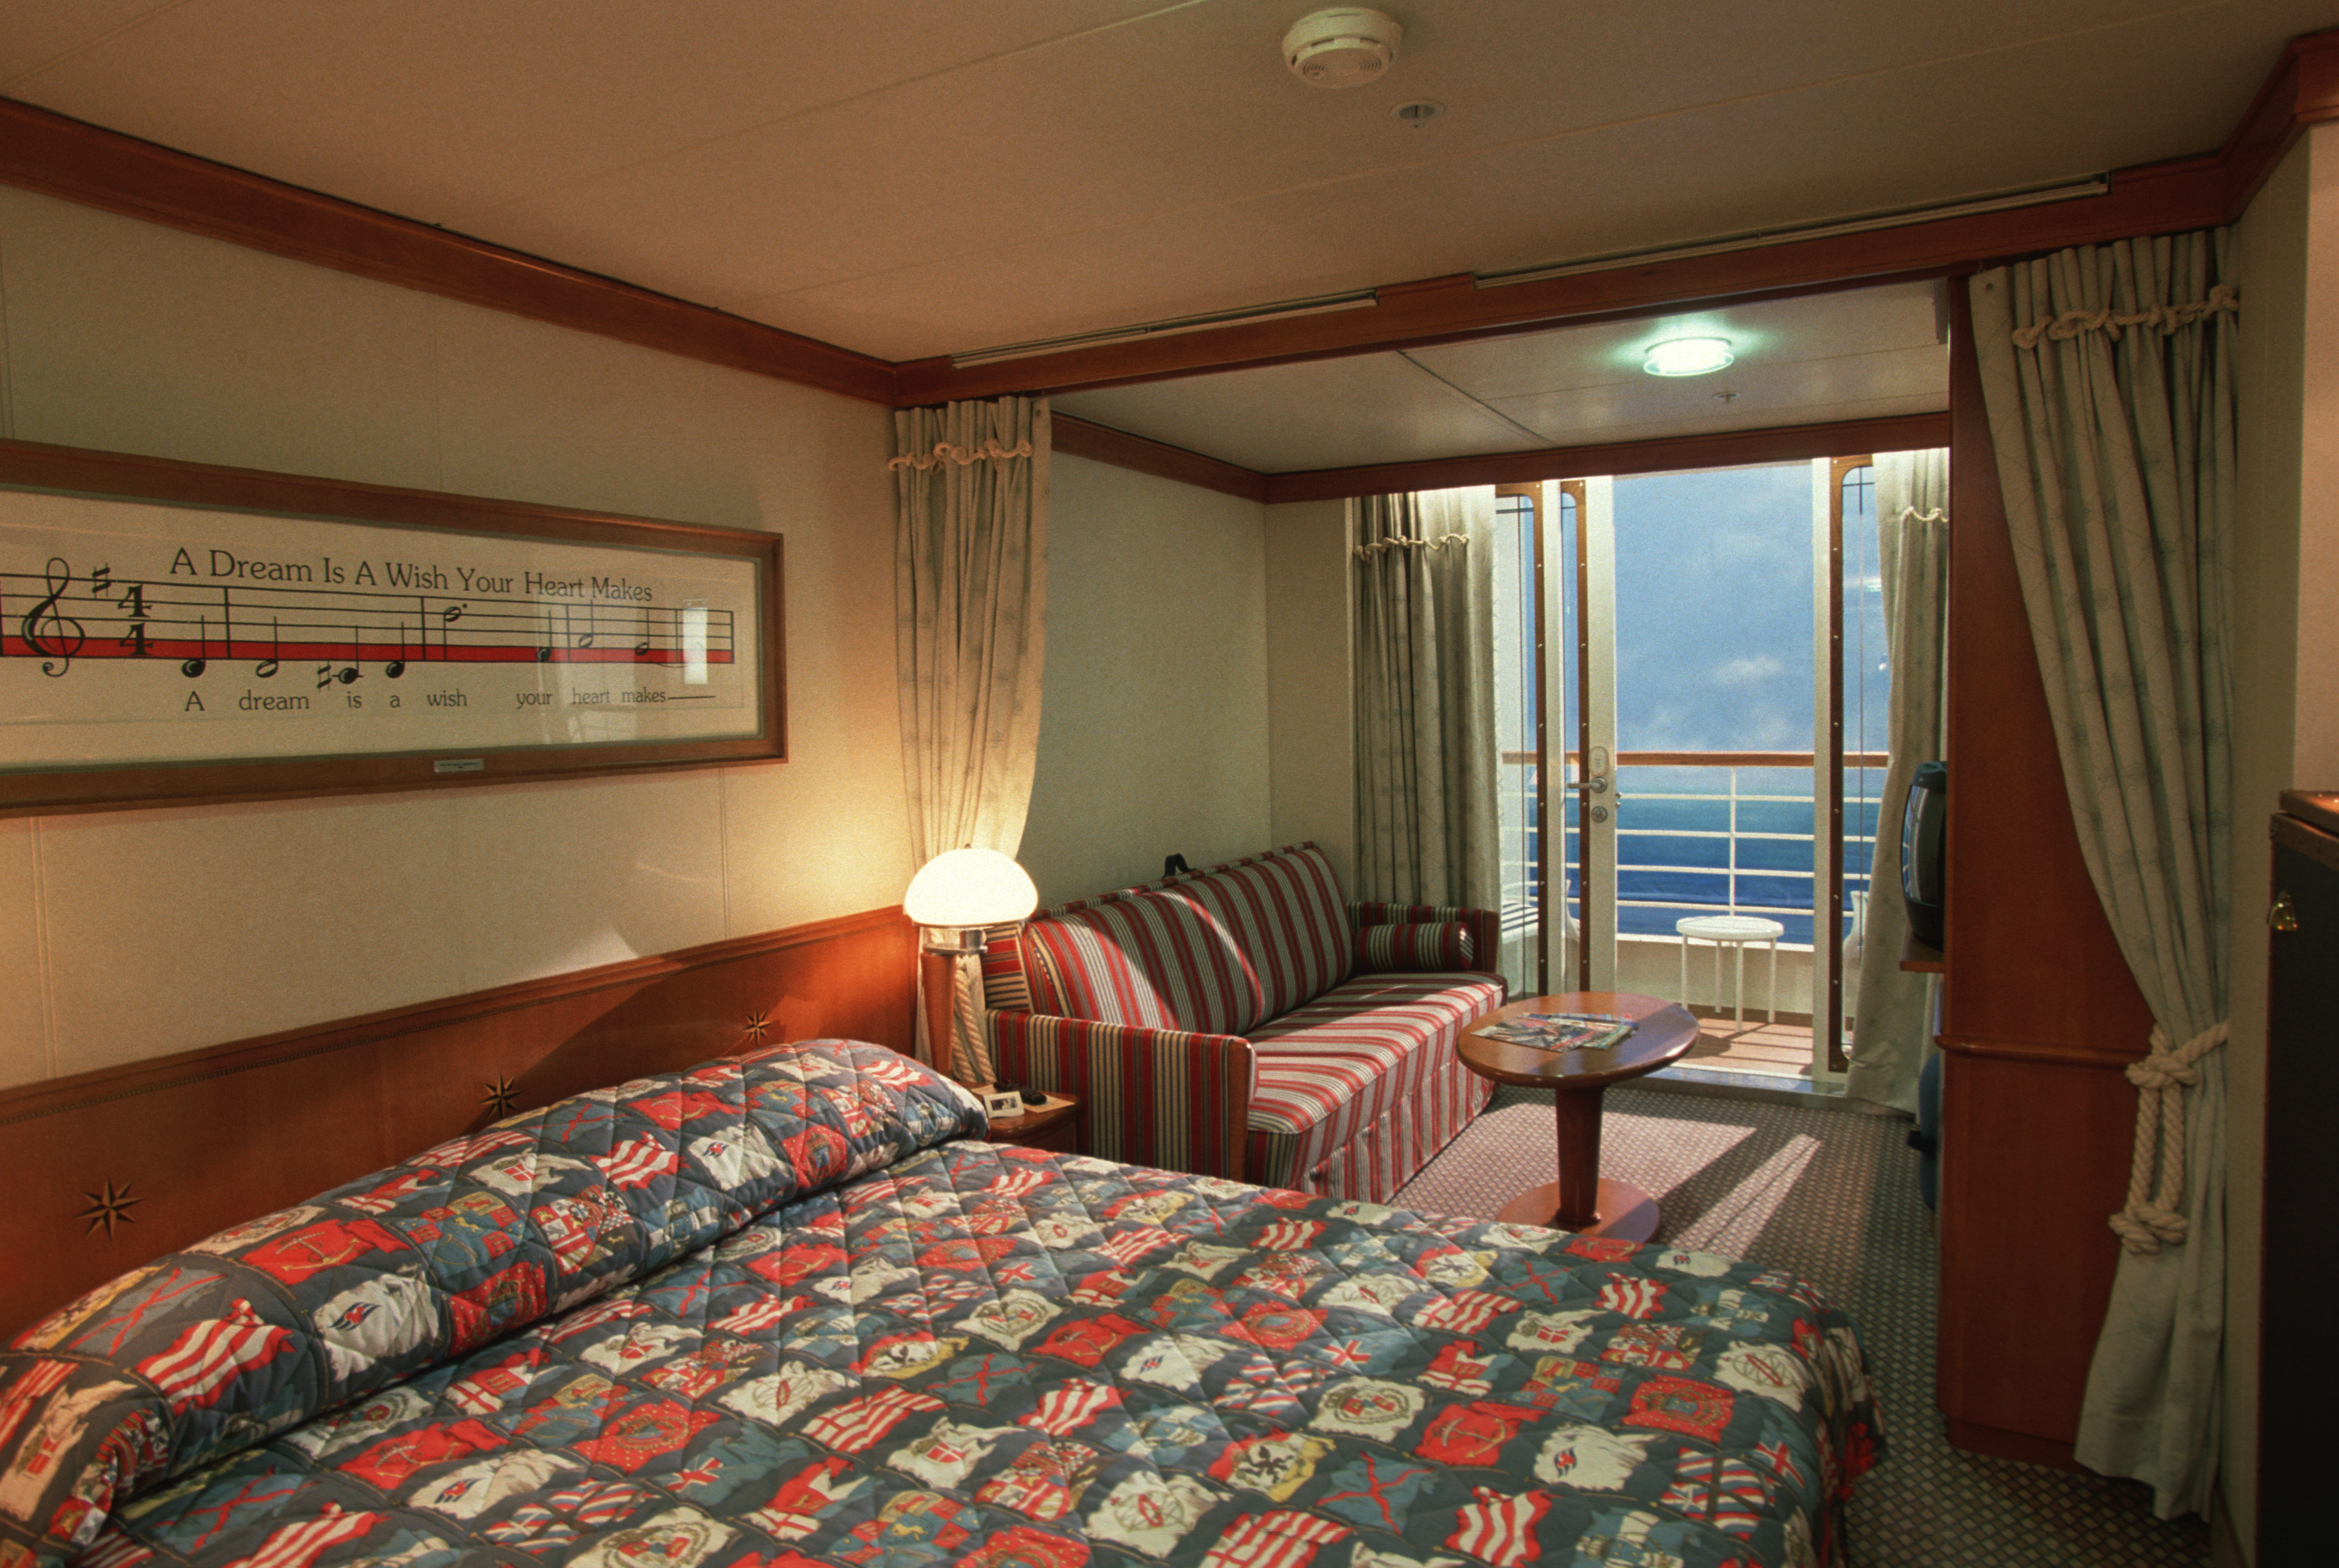 Disney Cruise Line Accommodation Category 5, 6 & 7 Deluxe Oceanview Stateroom with Verandah.jpg